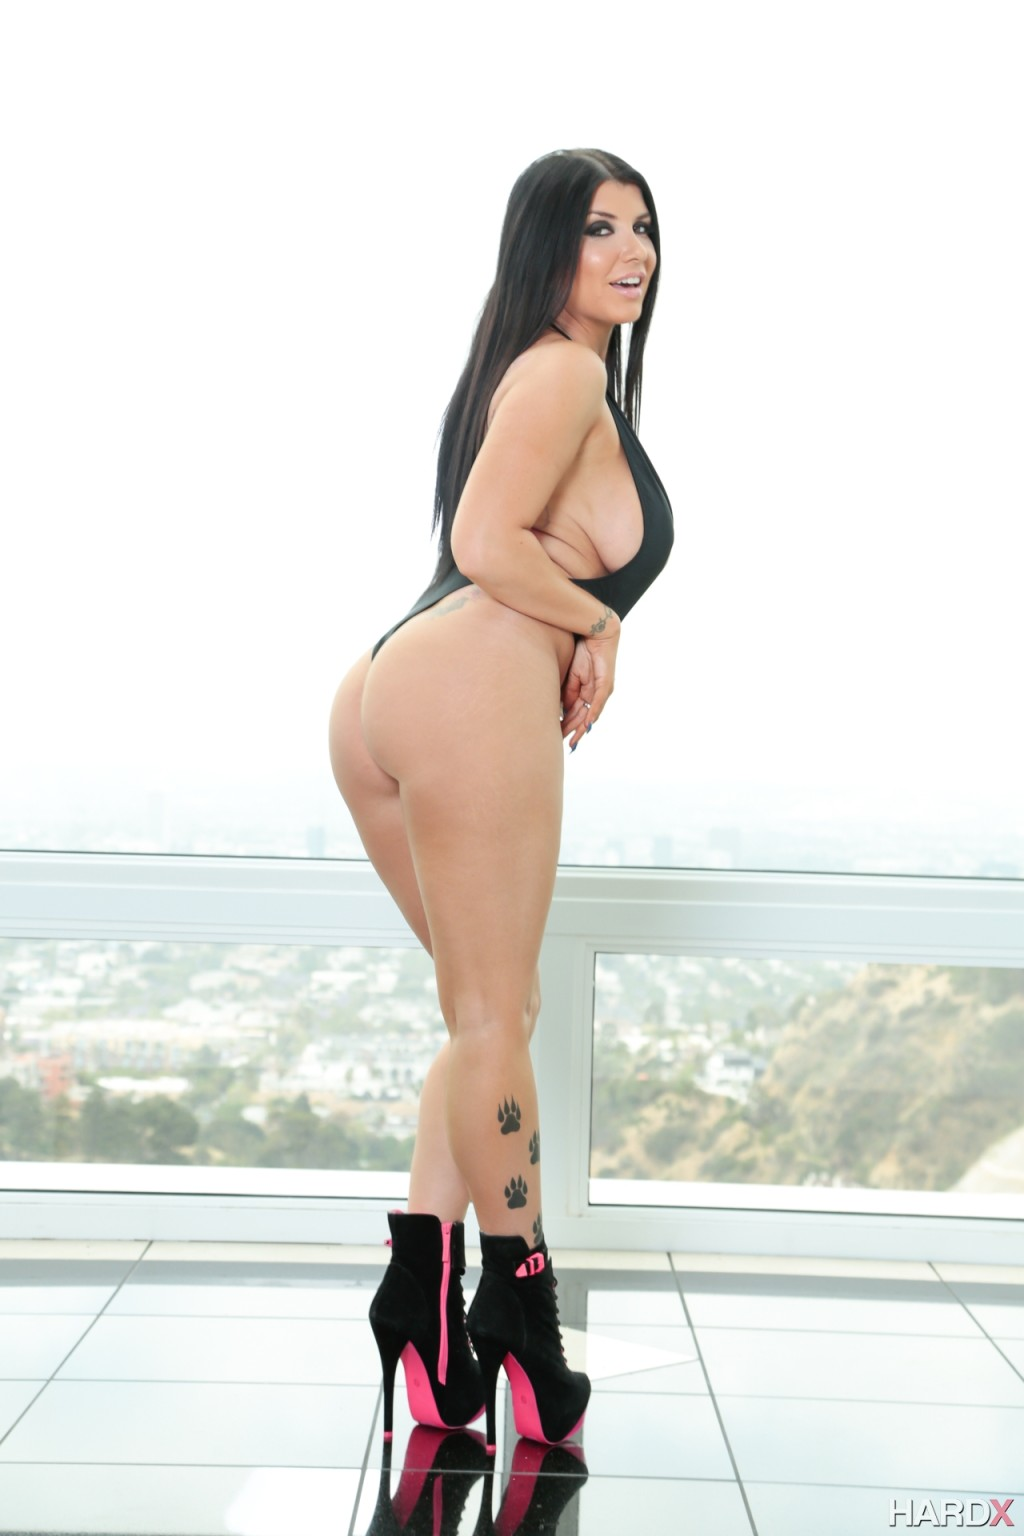 Romi rain 10 guy massive facial